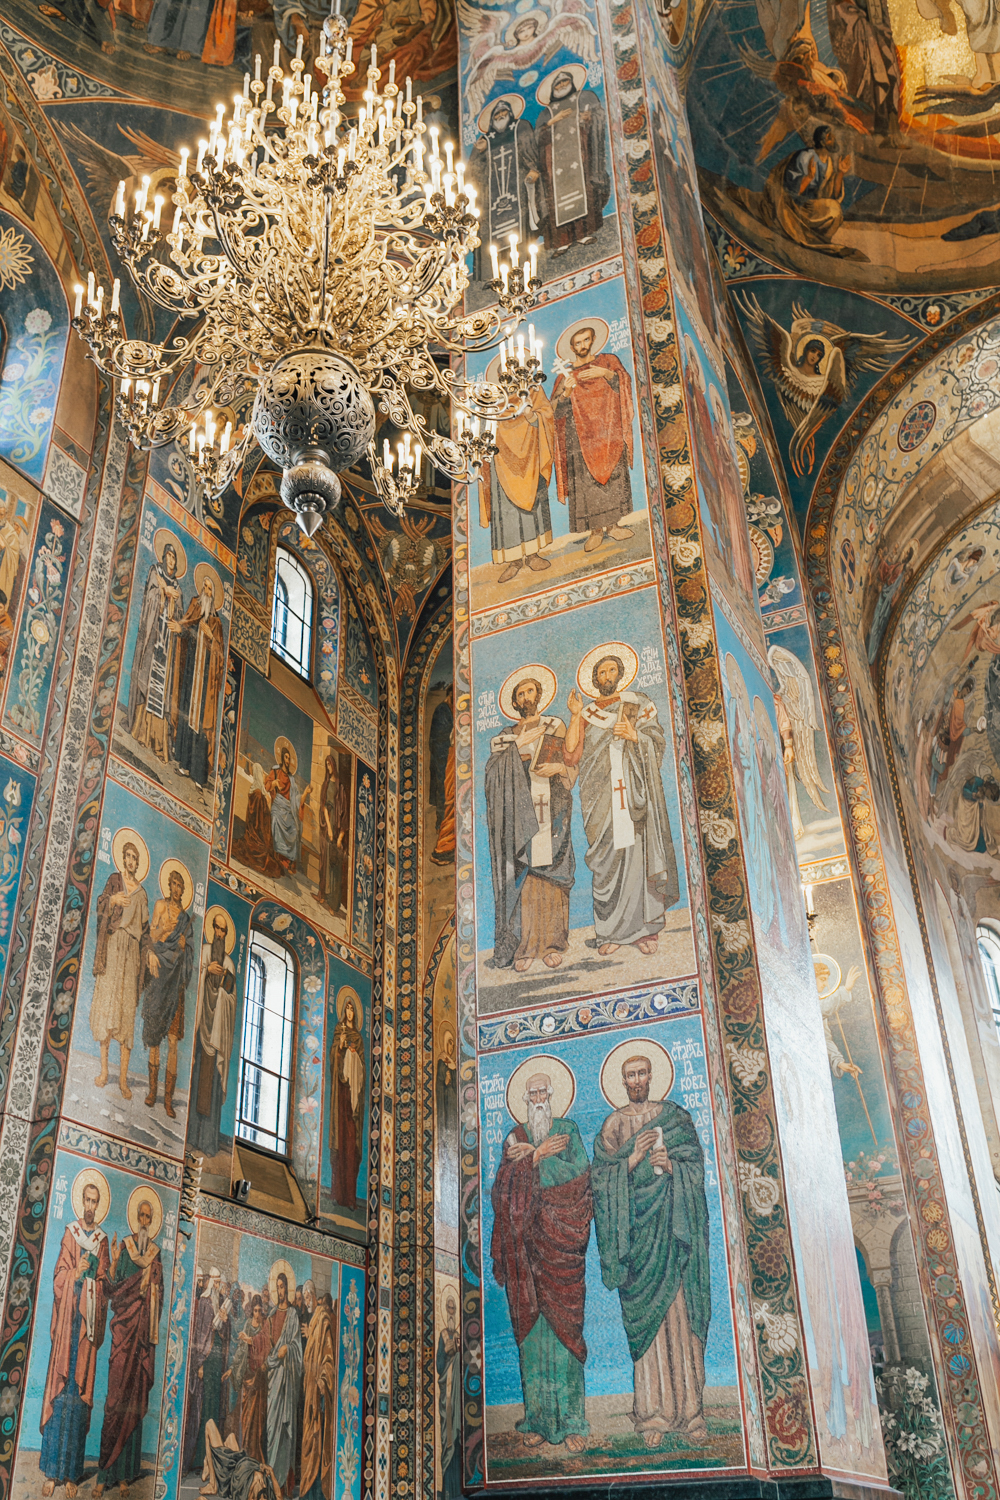 church-of-the-savior-on-spilled-blood-saint-petersburg-russia-city-guide-livvyland-blog-olivia-watson-austin-texas-travel-fashion-blog-blogger-princess-cruises-scandinavia-baltic-sea-2